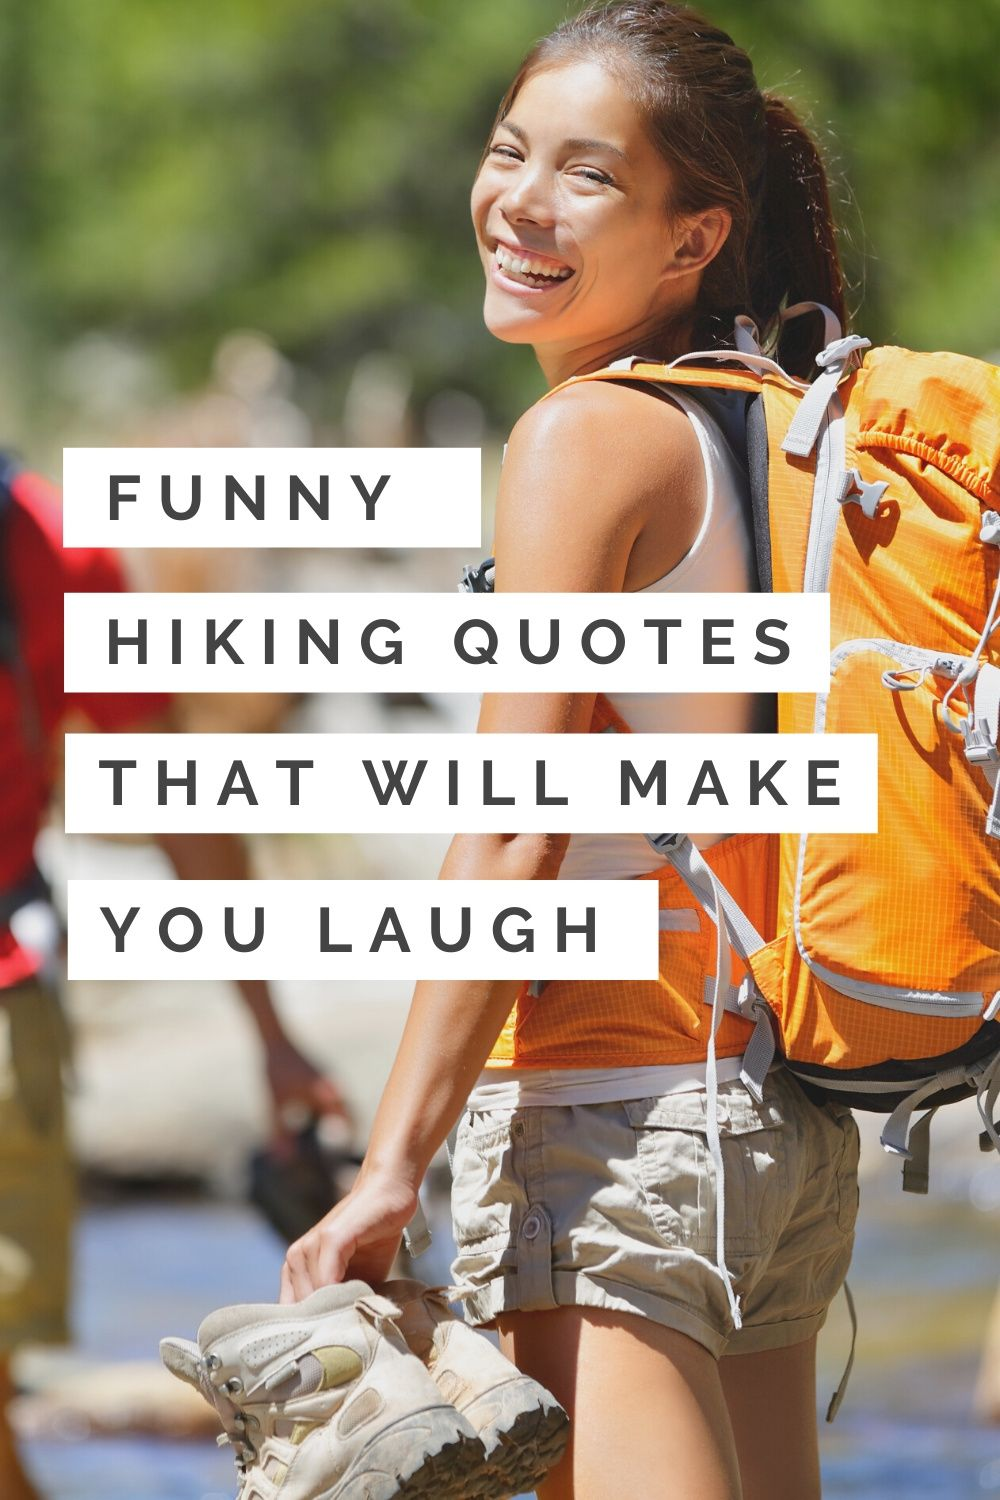 31 Funny Hiking Quotes Sayings For Nature Lovers Itsallbee Solo Travel Adventure Tips Funny Hiking Hiking Quotes Funny Hiking Quotes